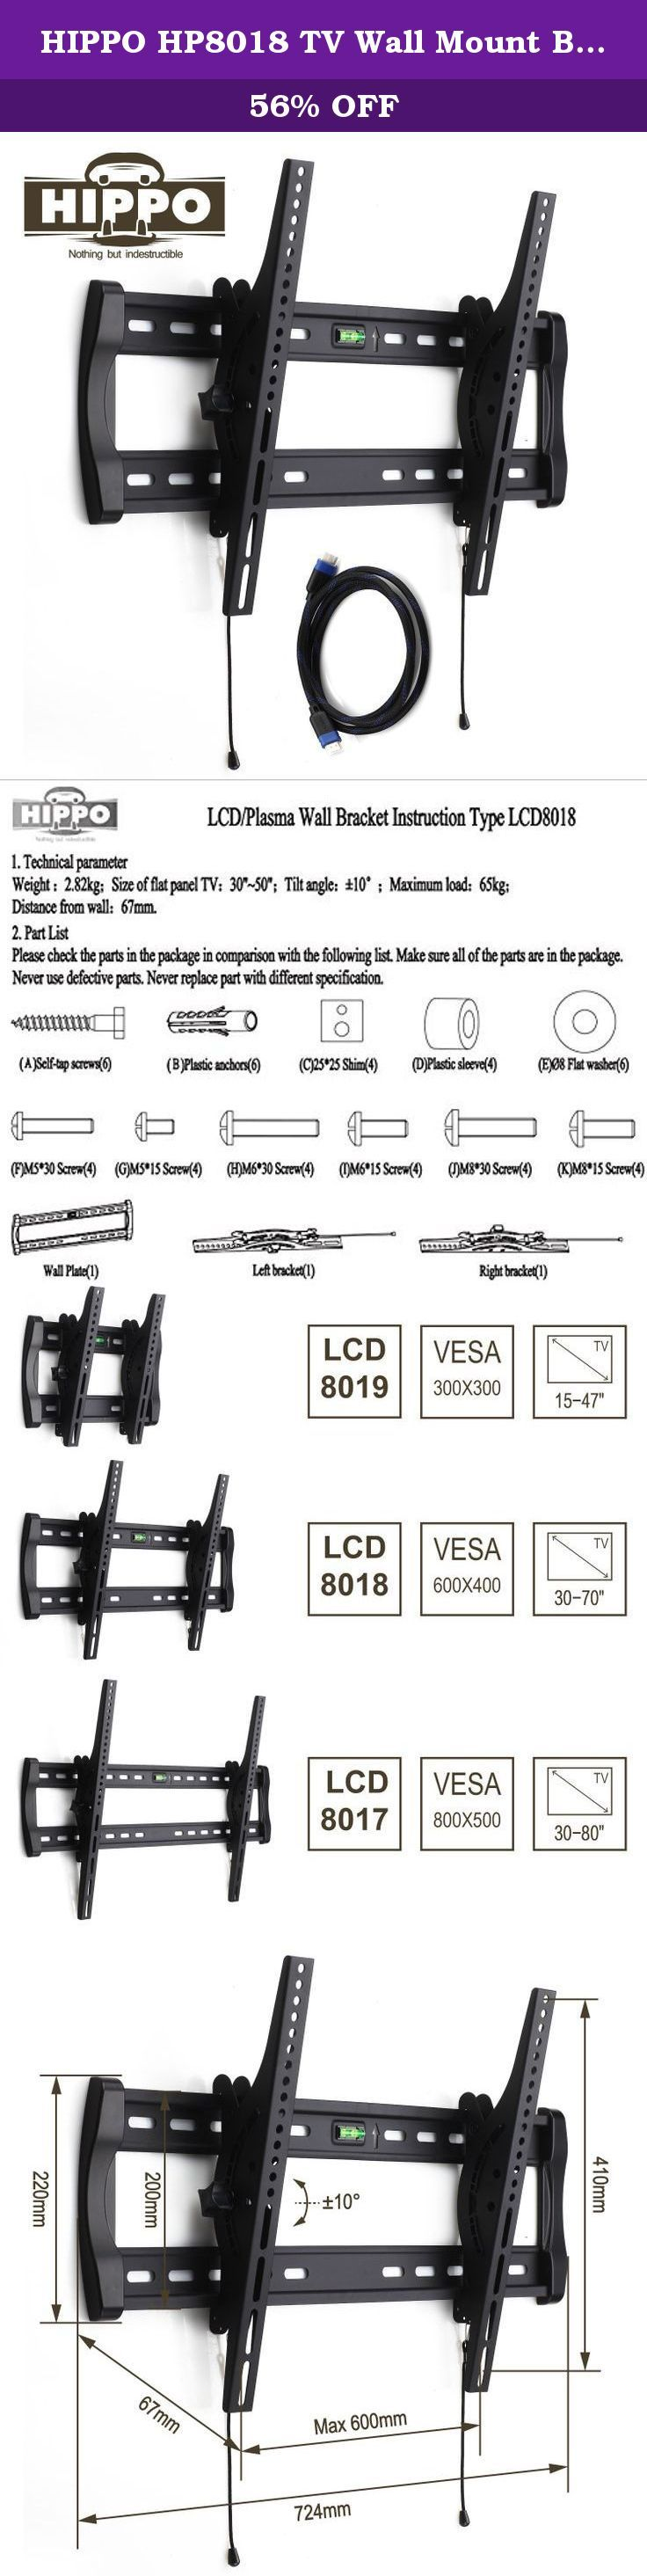 "HIPPO HP8018 TV Wall Mount Bracket for Most 42""- 70"" LED LCD Plasma Flat Screen TVs weighing up to 132 Lbs, VESA up to 600x400 mm, ±10 Degree Tilt , Quick Release, Security Lock, 5 ft HDMI Cable. The Hippo HP8018 mount is an innovation mounting solution for most 42"" - 70"" flat screen monitors, (Please check VESA and Weight). The HP8018 fits essentially all 32""-65"" TVs sold today. This mount works with many displays 30"" - 70"" as well. Specifically, the HP8018 fits TVs with mounting holes…"